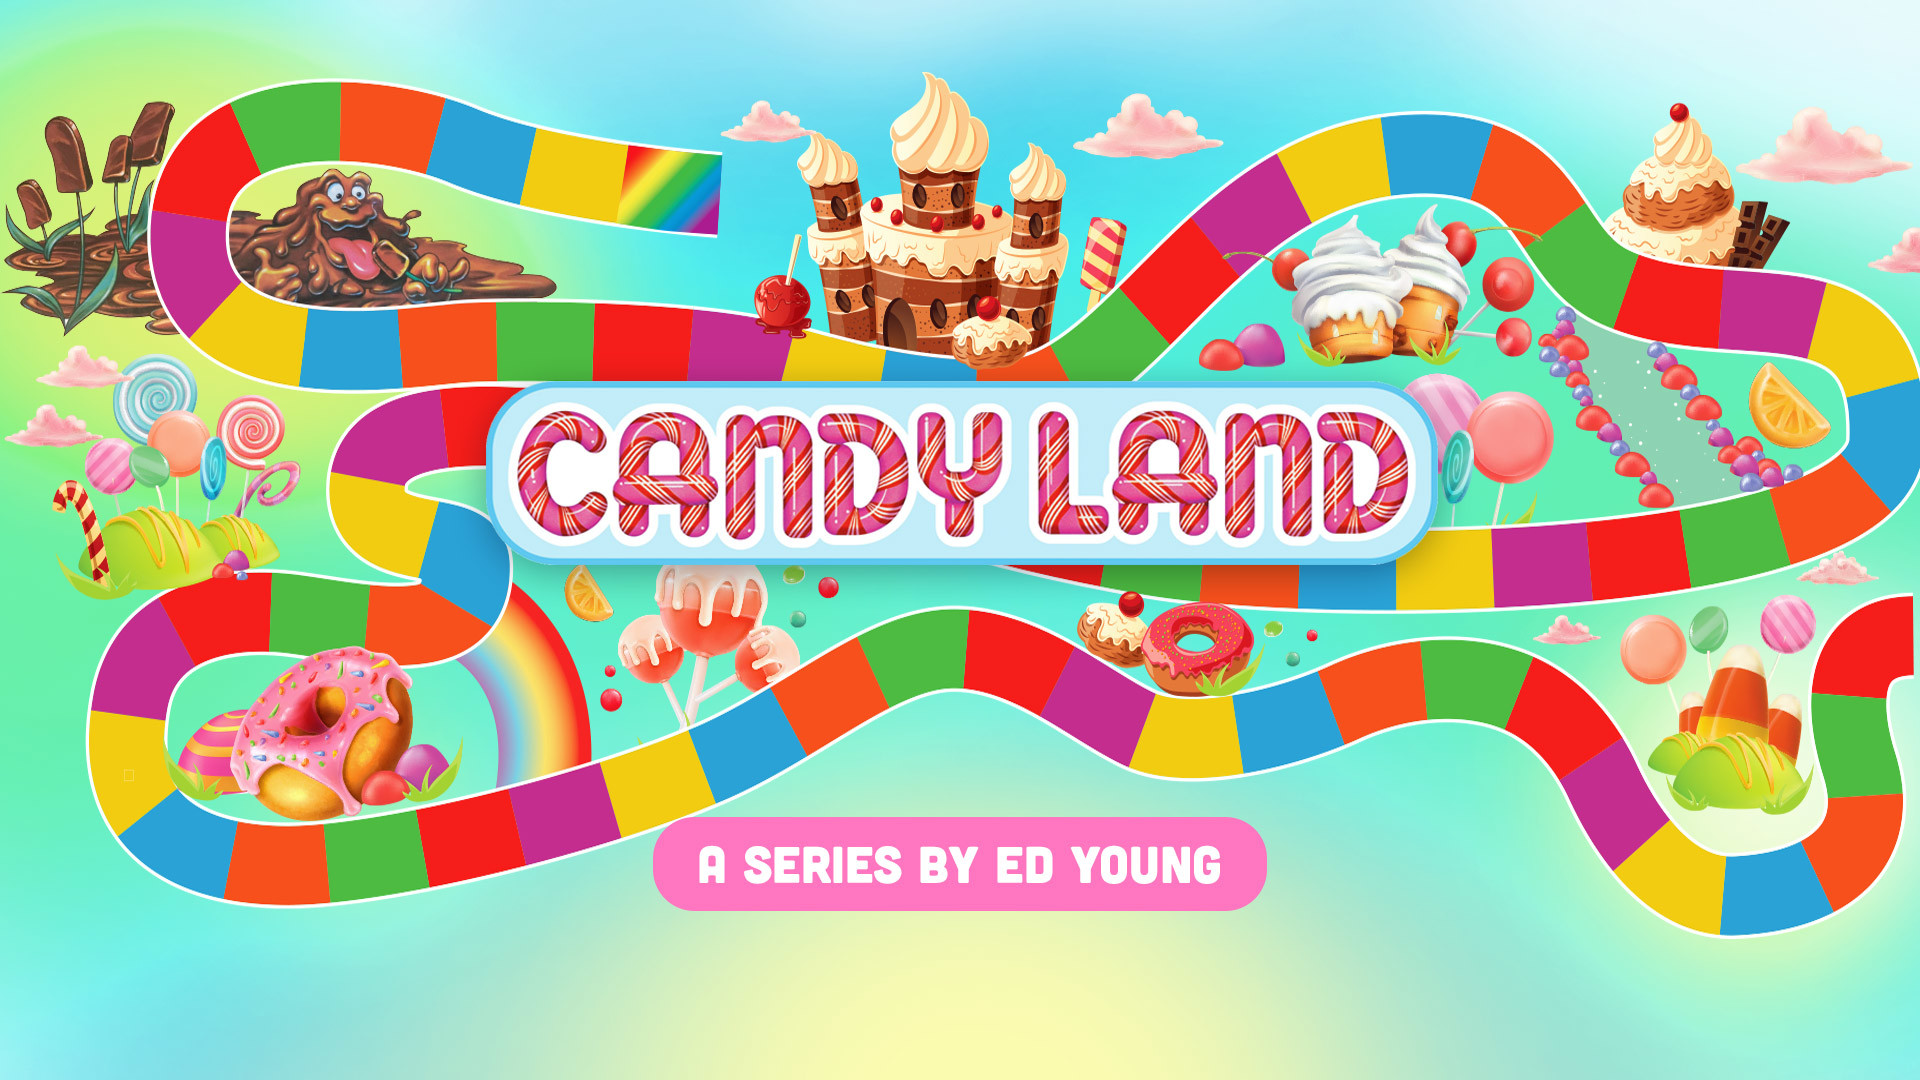 candyland wallpaper hd labzada wallpaper